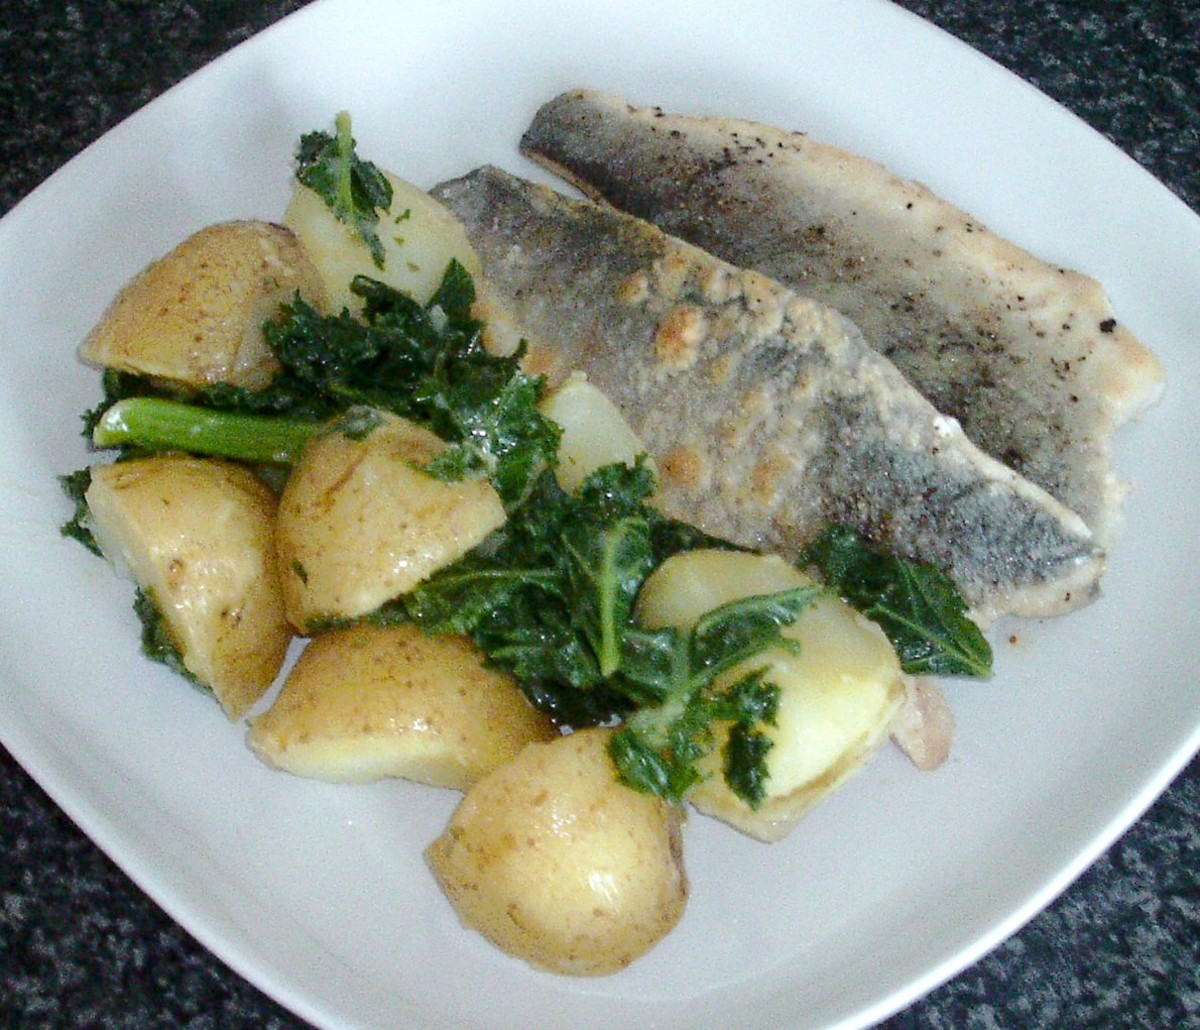 Pan fried sea bass fillets are served with boiled potatoes and kale in a rich and tasty turmeric and tarragon butter sauce